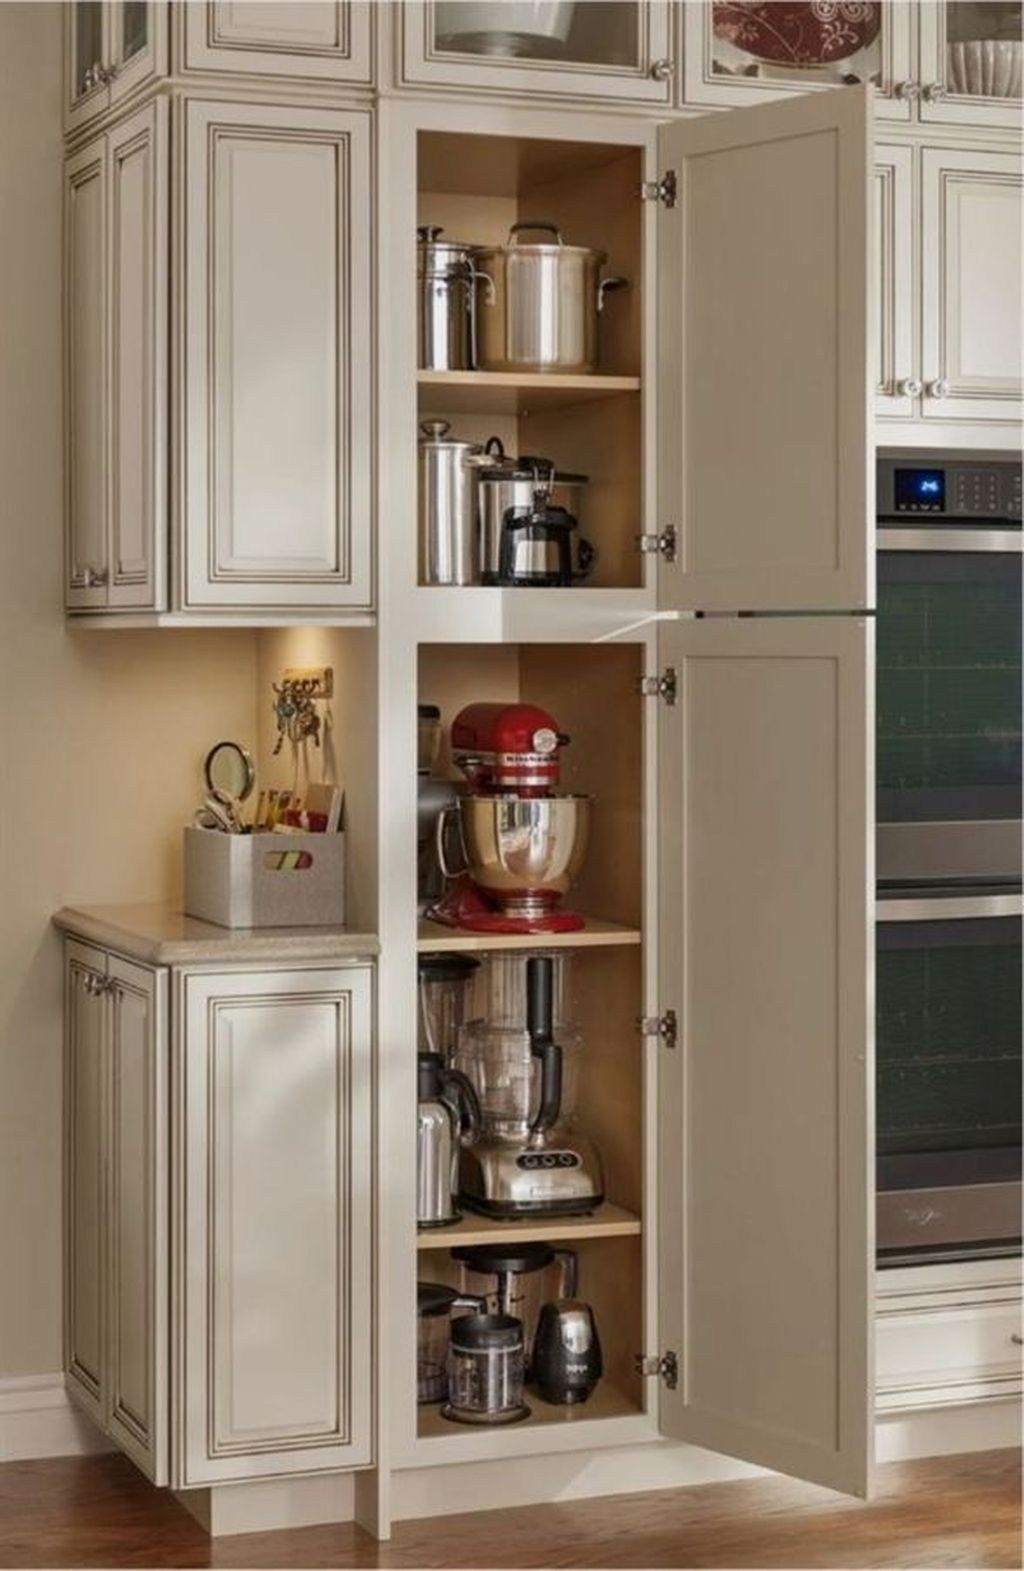 30+ Practical Kitchen Ideas You Will Definitely Like is part of Practical Kitchen Ideas You Will Definitely Like - A good storage space can also be a kitchen decoration  Discover these 15 smart kitchen inspirations you will surely love  […]